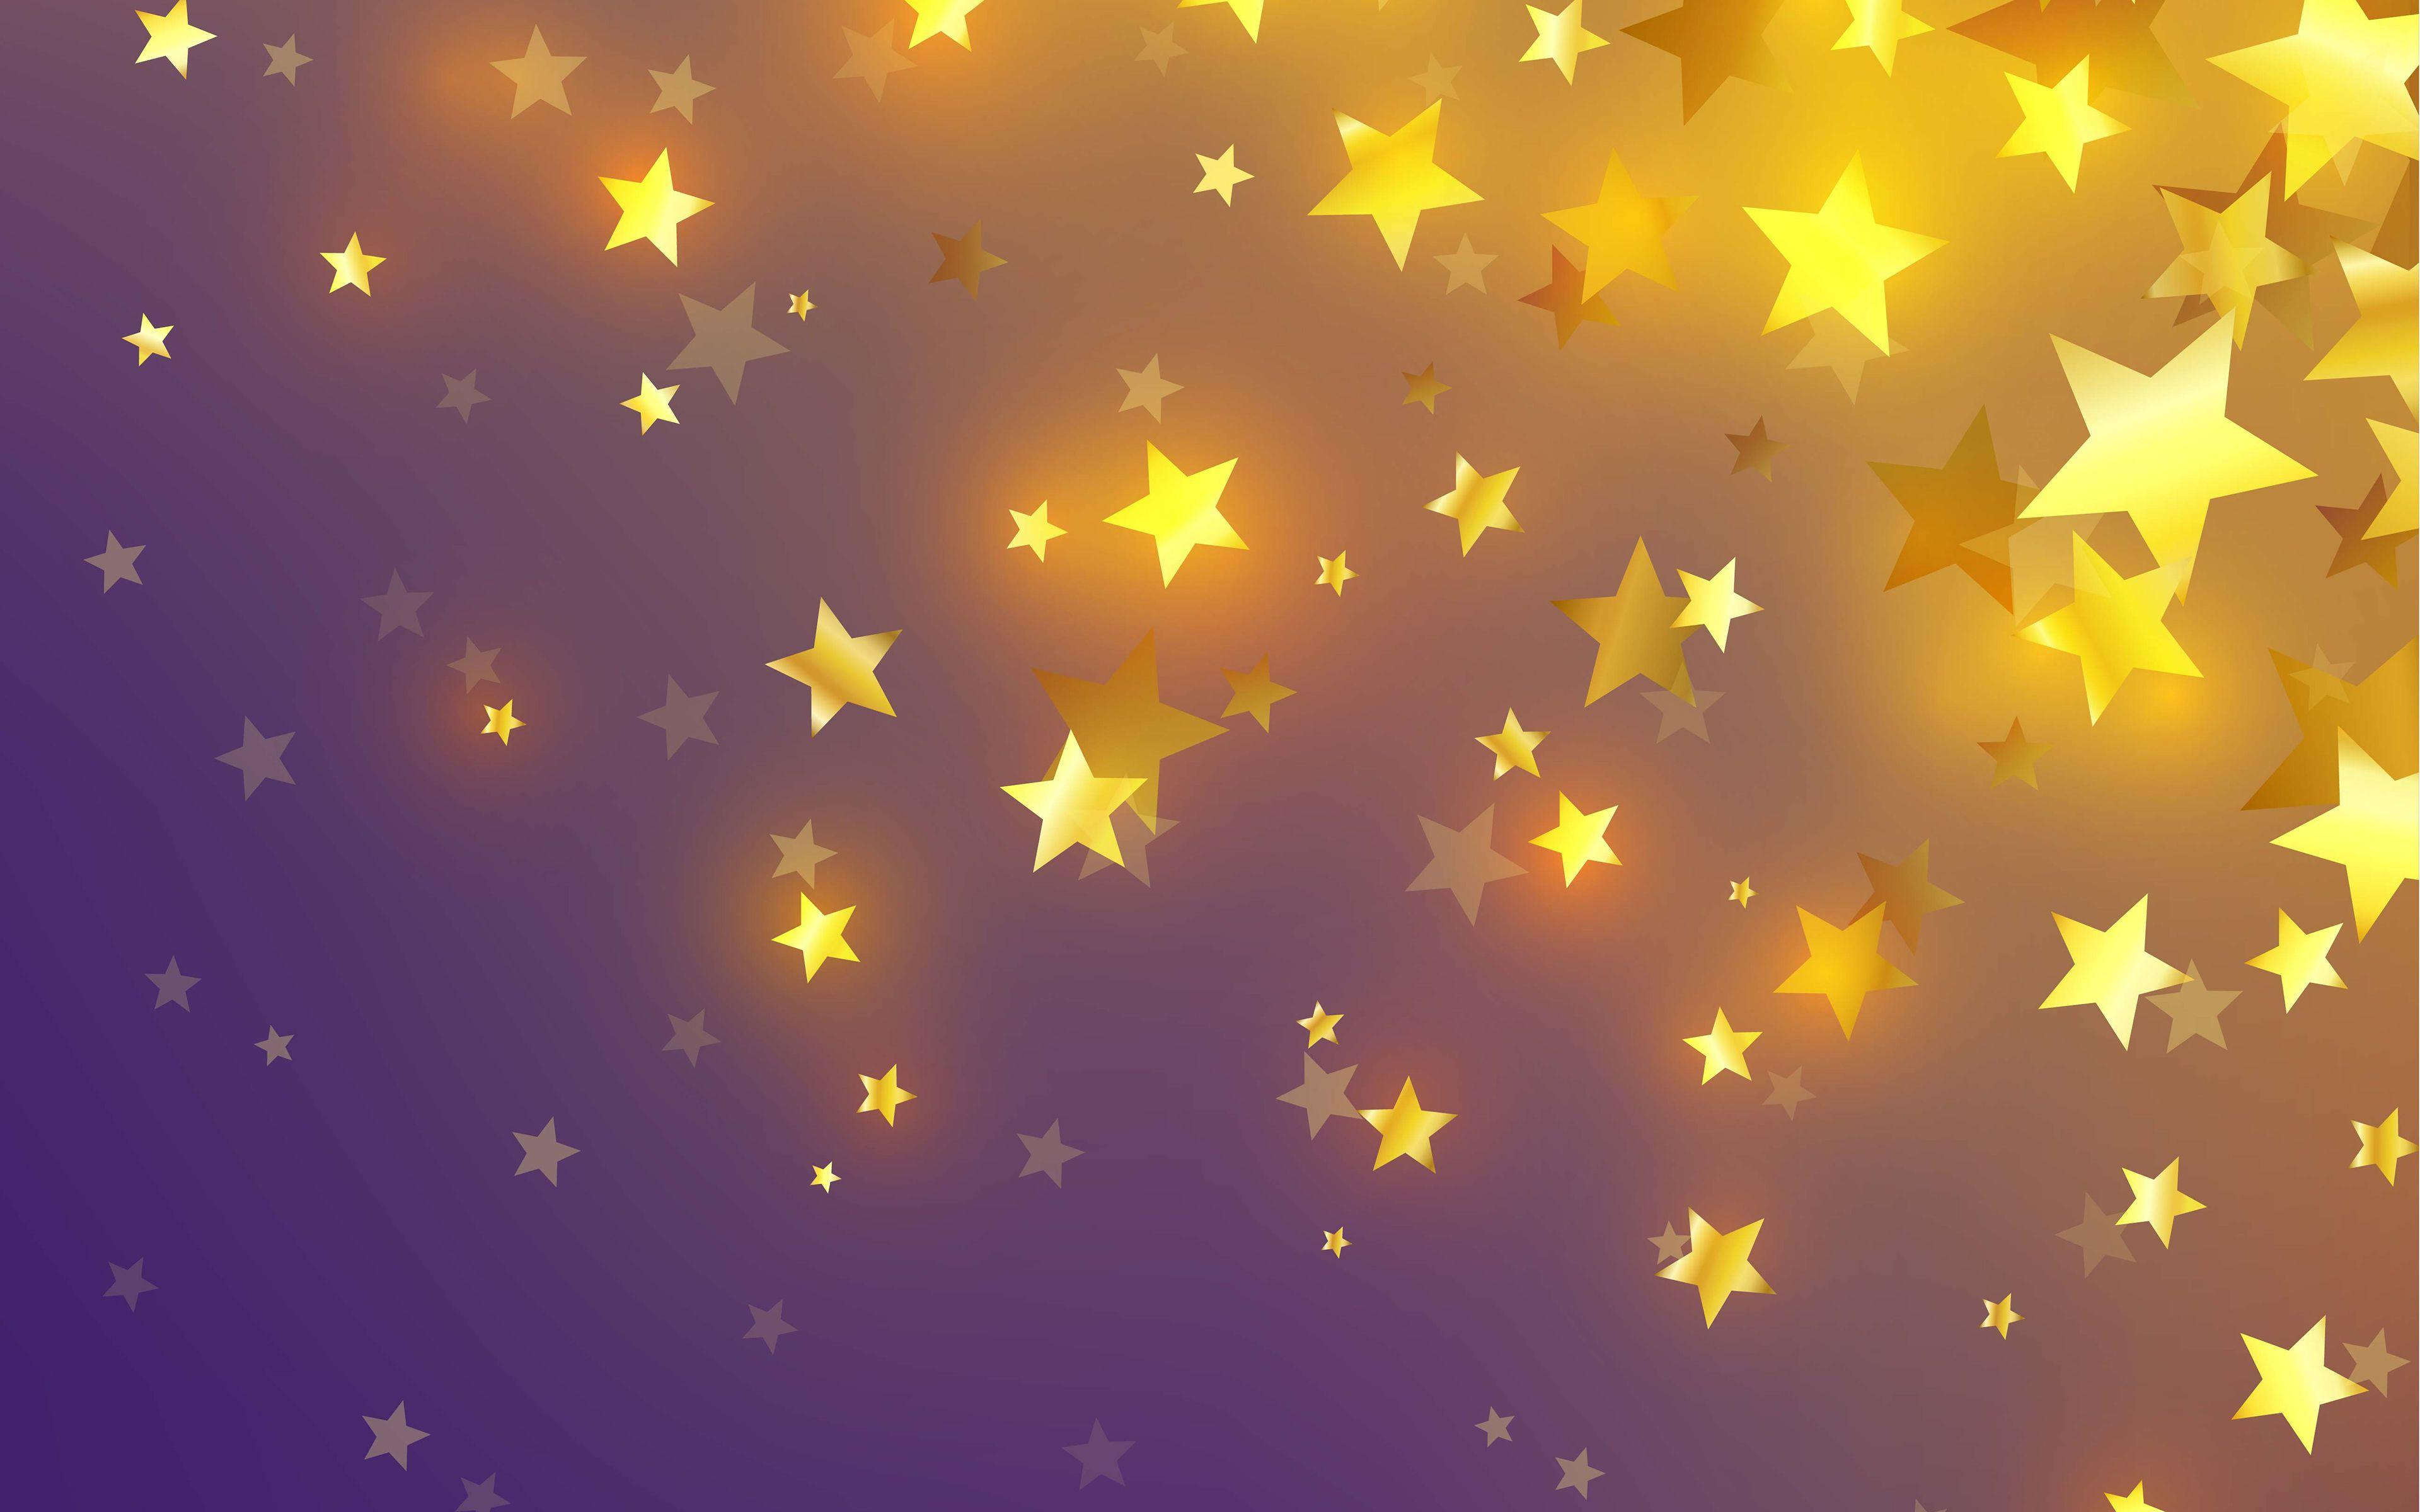 Wallpapers Star Wallpaper Cave